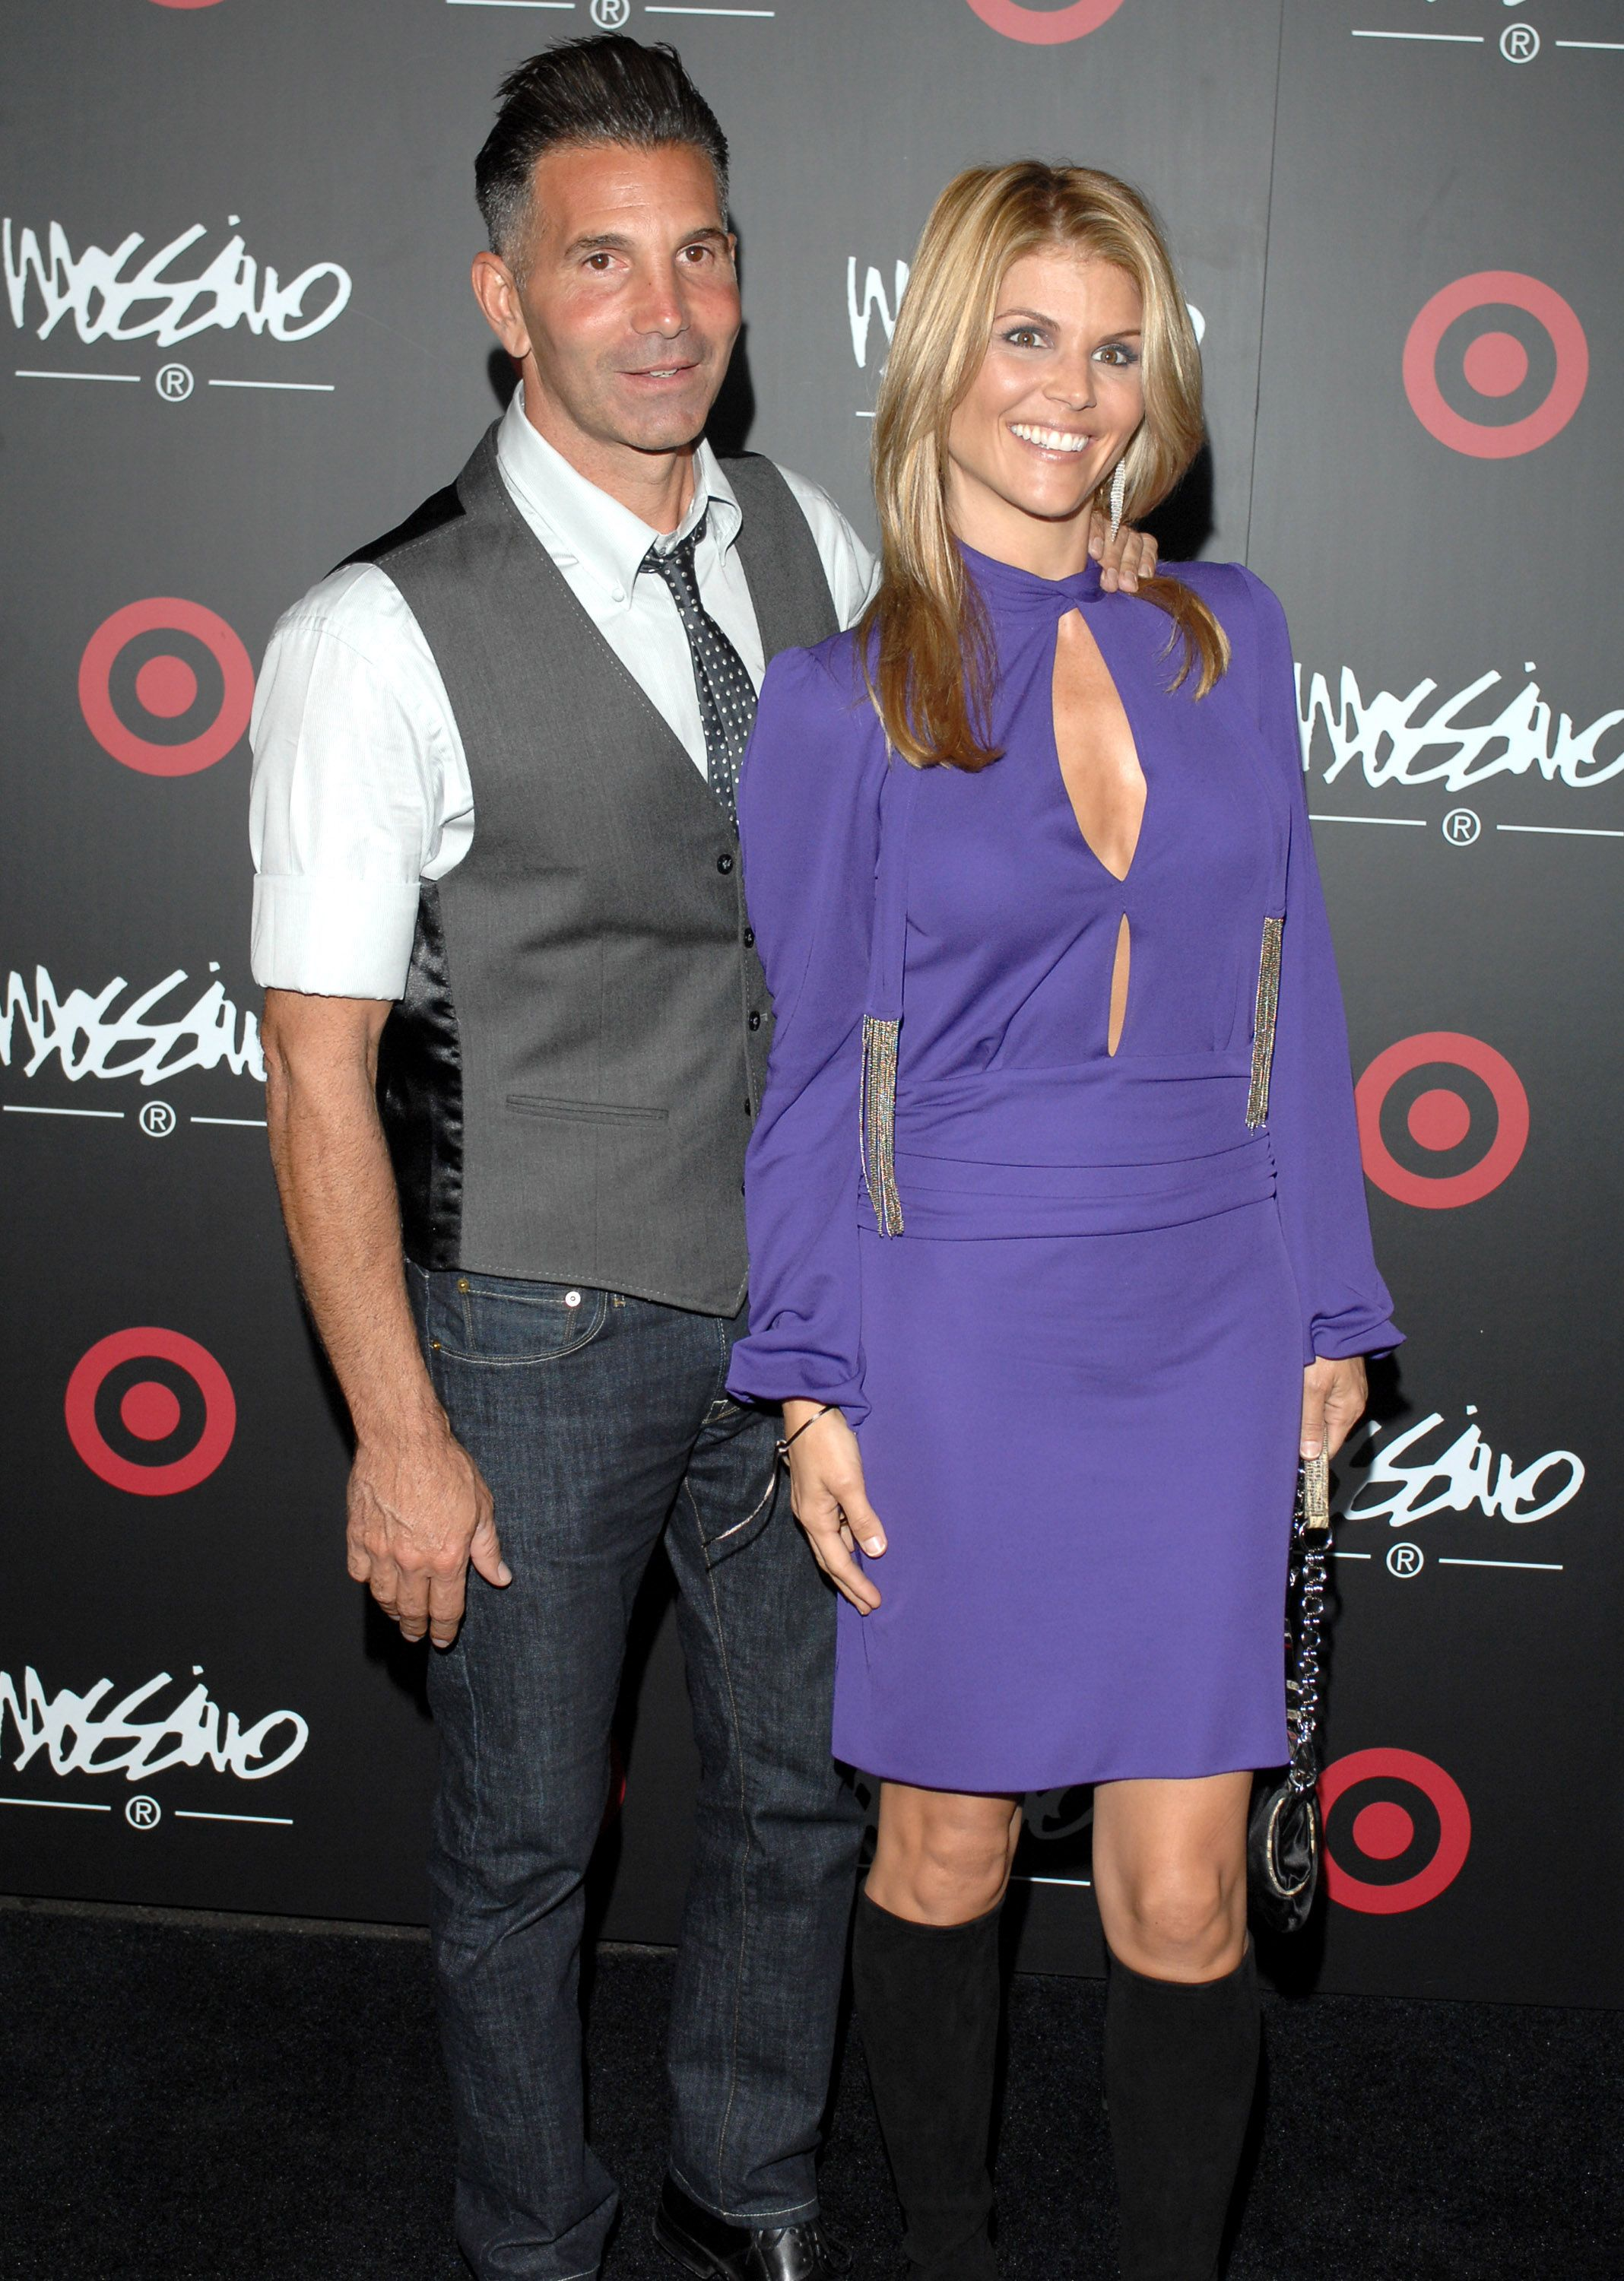 Mossimo Giannulli and Lori Loughlin at Target Hosts LA Fashion Week Party for Designer   Photo: Getty Images